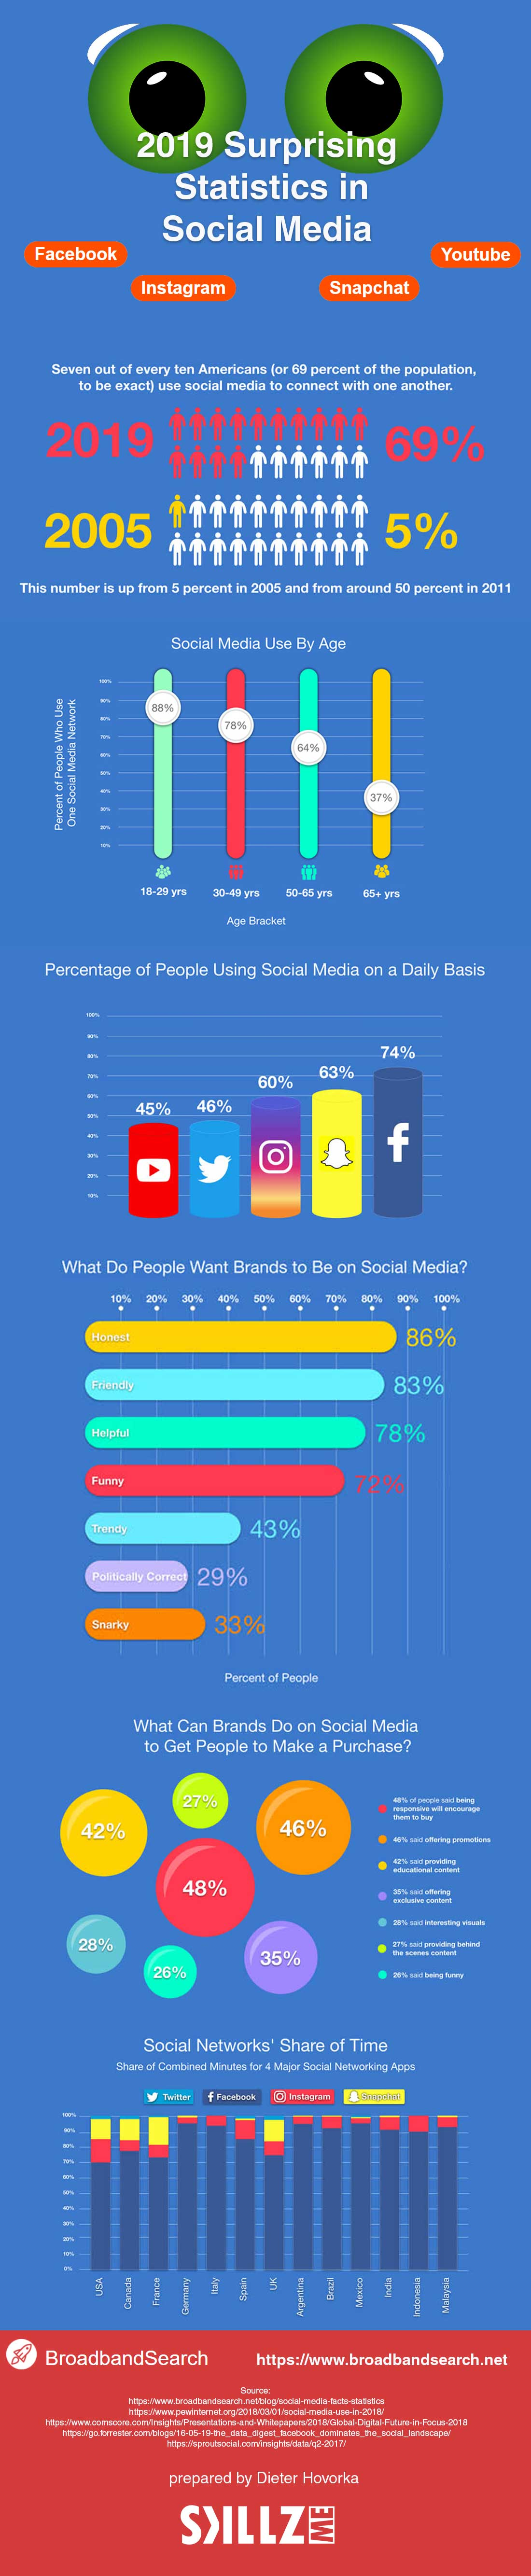 2019 Surprising Statistics in Social Media